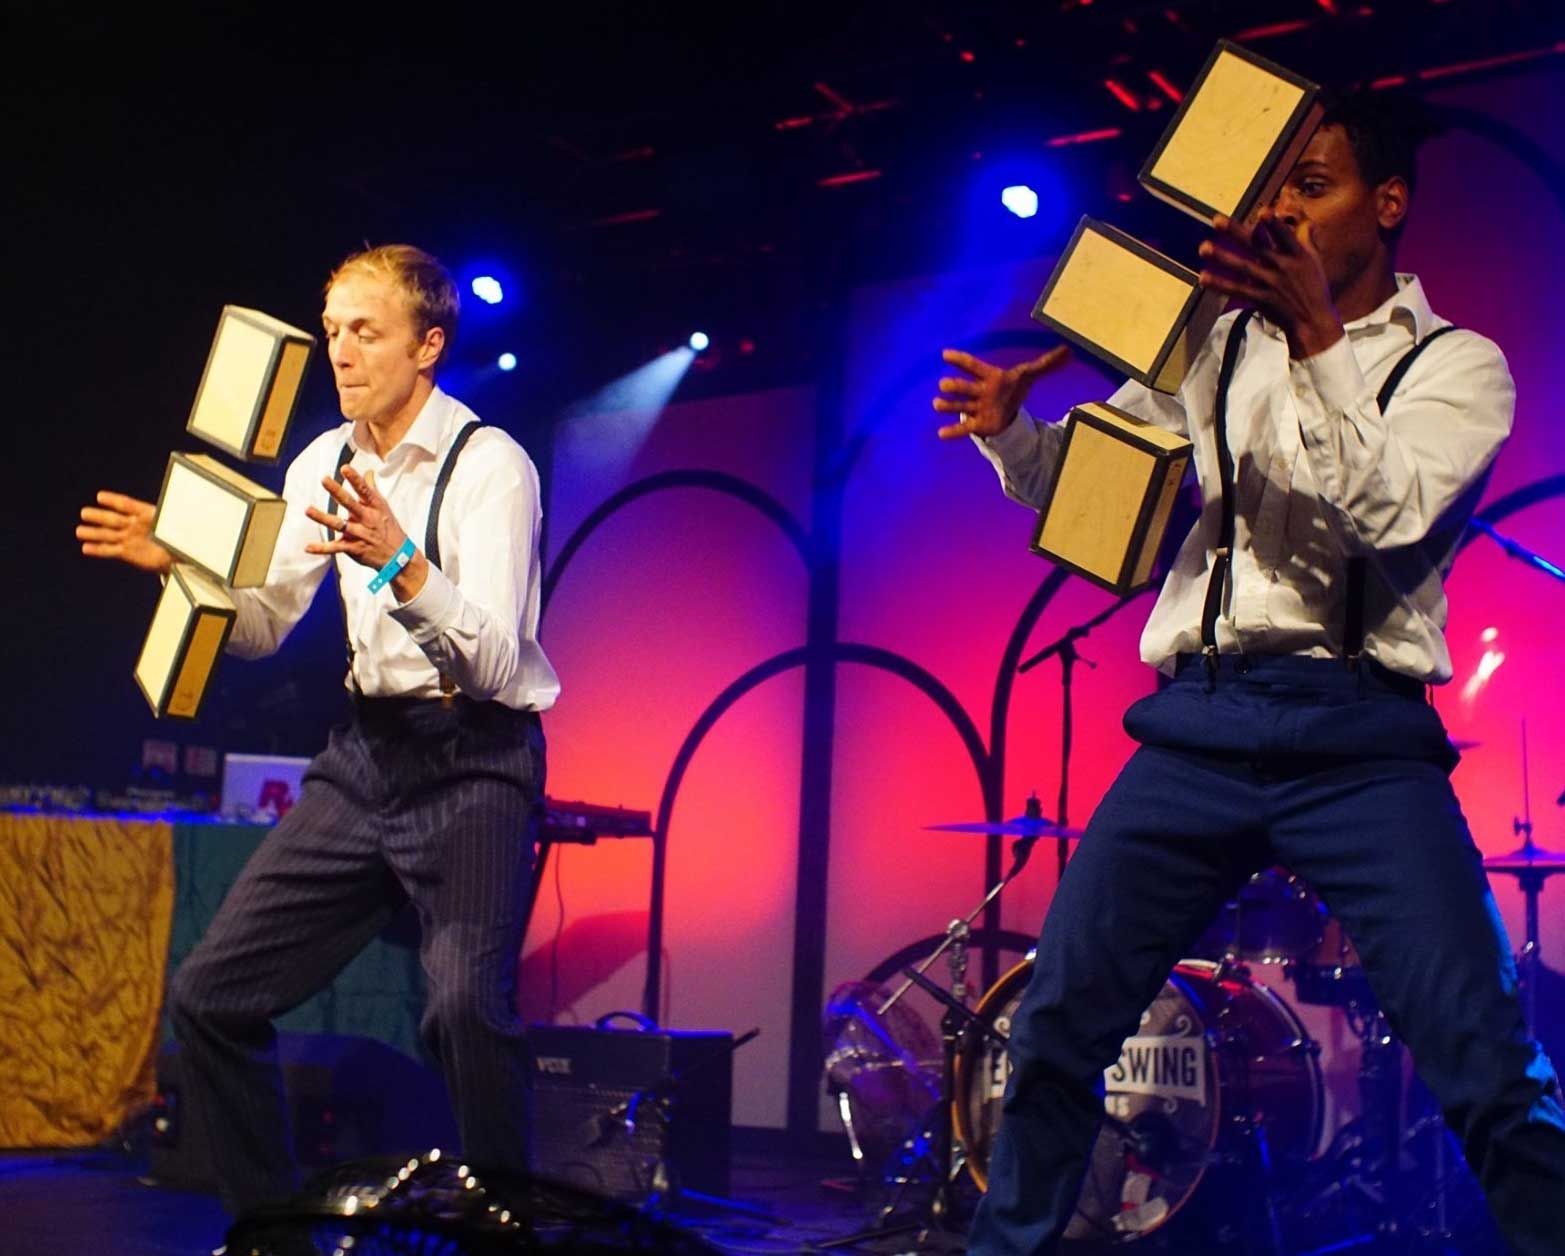 Performing a circus act with cigar boxes